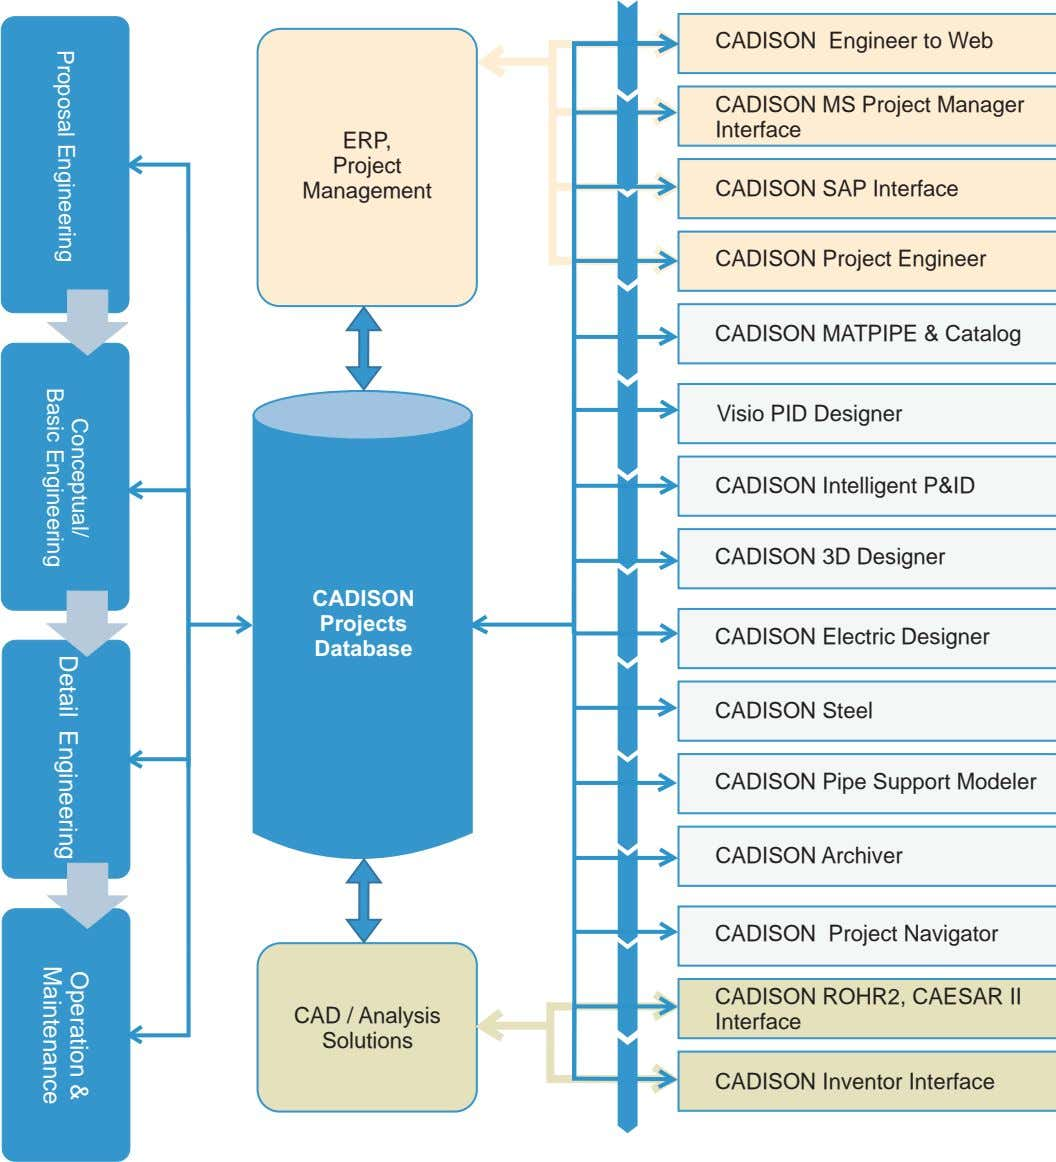 CADISON Engineer to Web CADISON MS Project Manager Interface ERP, Project Management CADISON SAP Interface